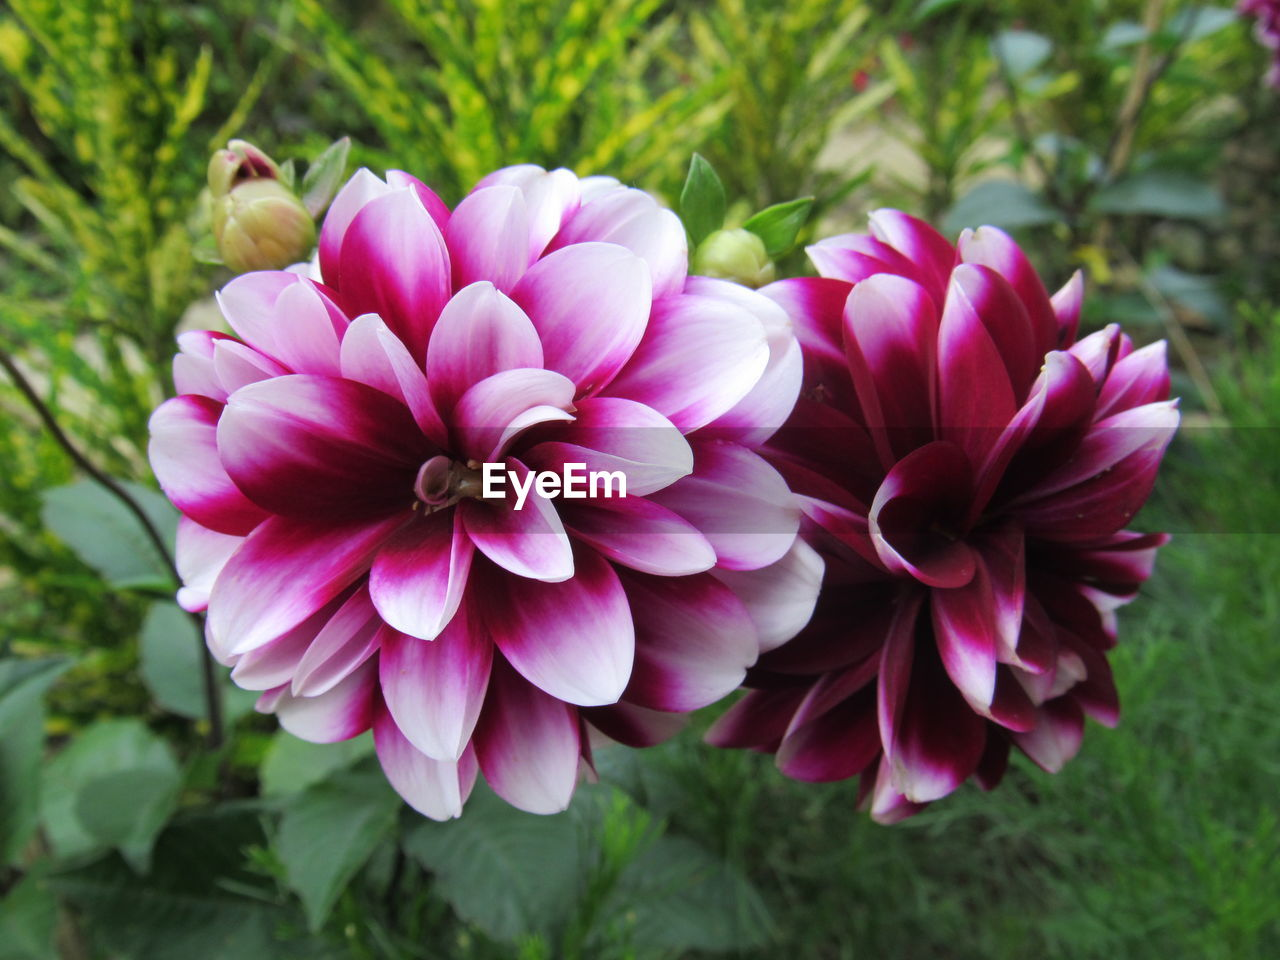 flowering plant, flower, plant, petal, freshness, fragility, vulnerability, beauty in nature, flower head, inflorescence, pink color, close-up, growth, nature, day, focus on foreground, no people, dahlia, outdoors, botany, purple